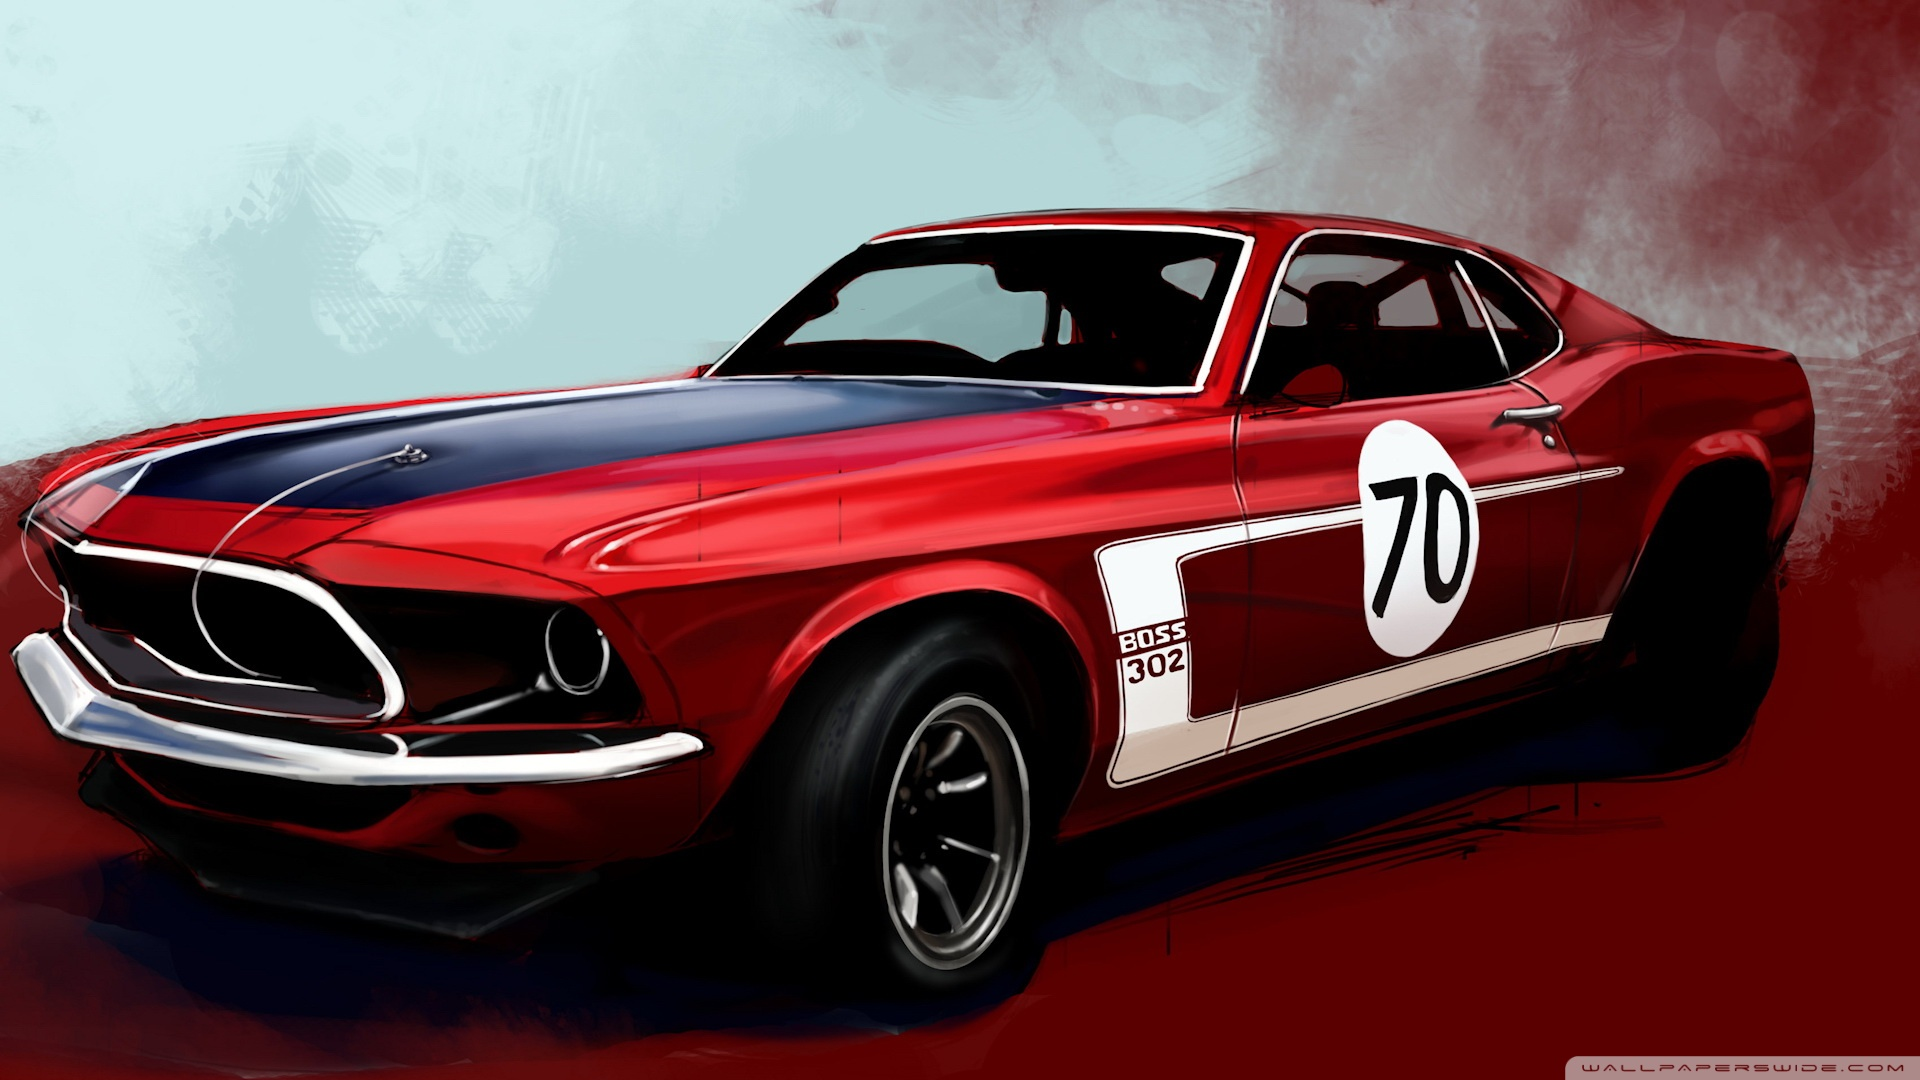 Ford Mustang Boss Classic Car Hd Desktop Wallpaper